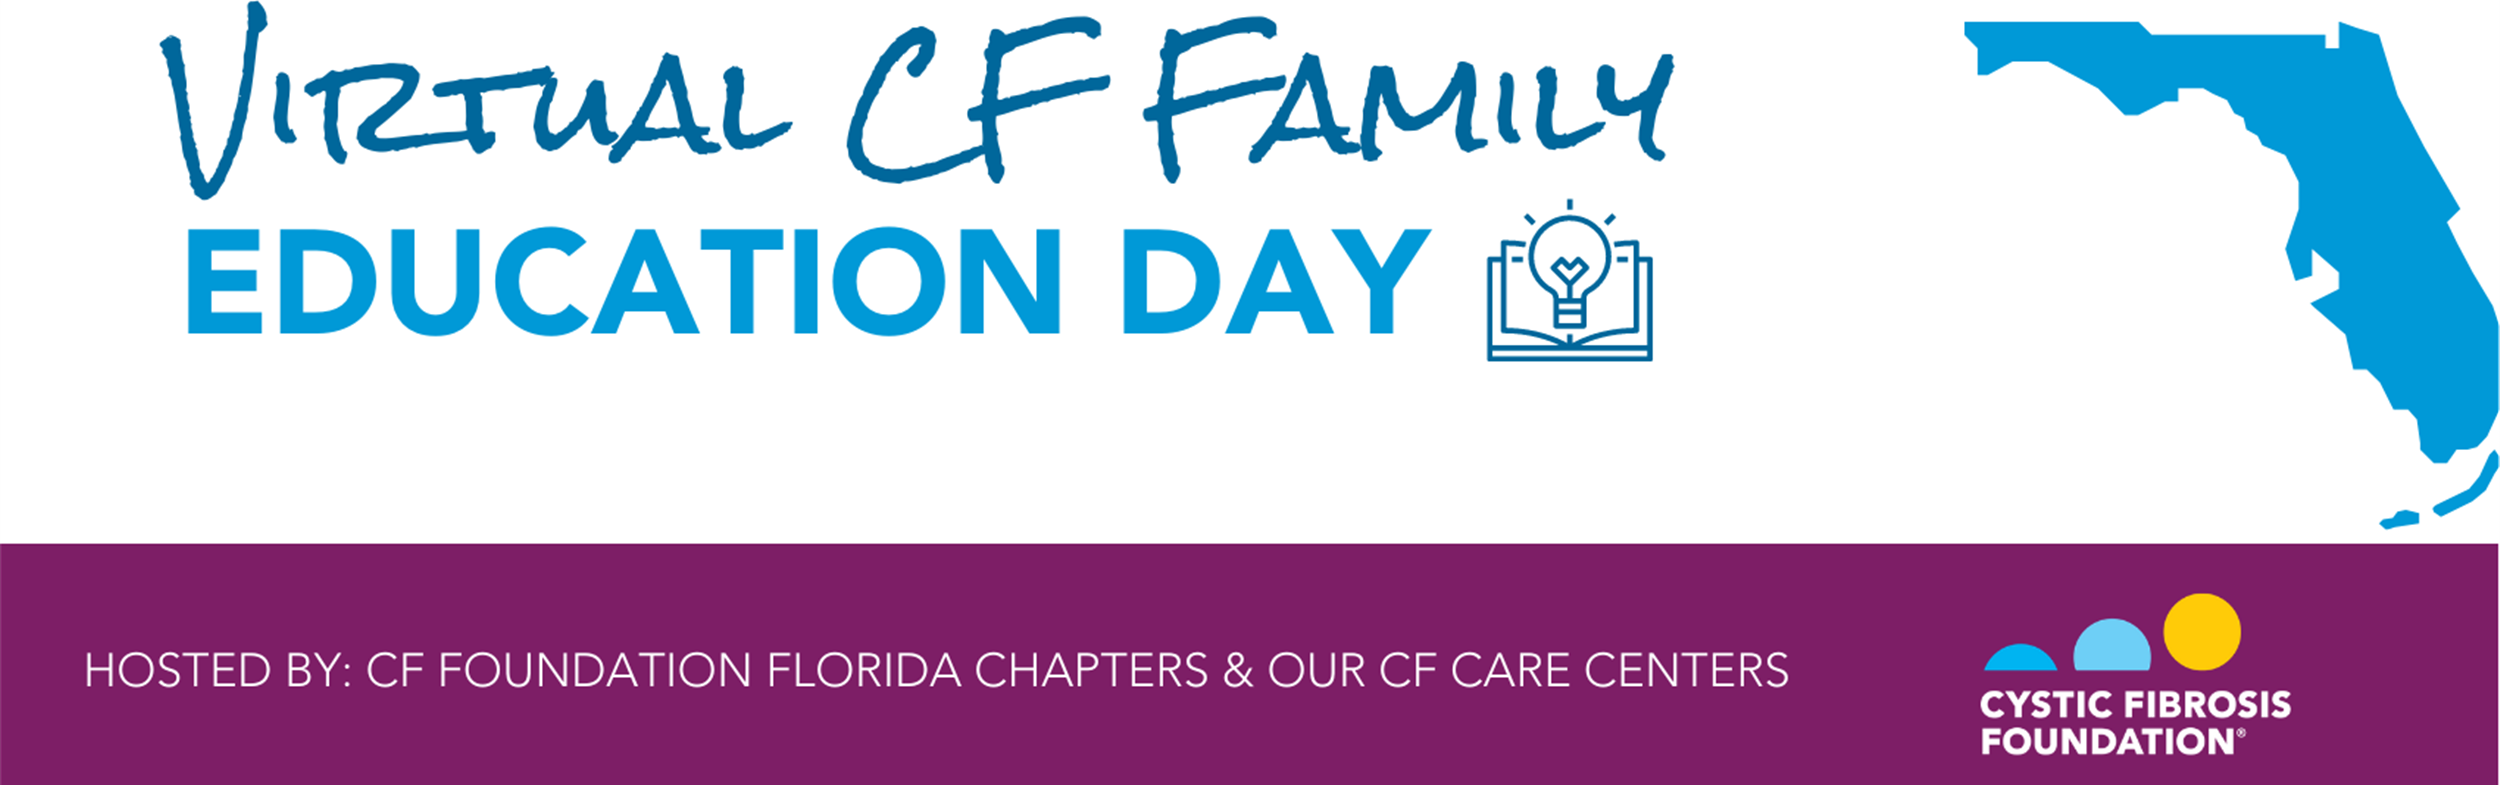 Website_Image_-_CF_Family_Education_Day_Image_(002).png